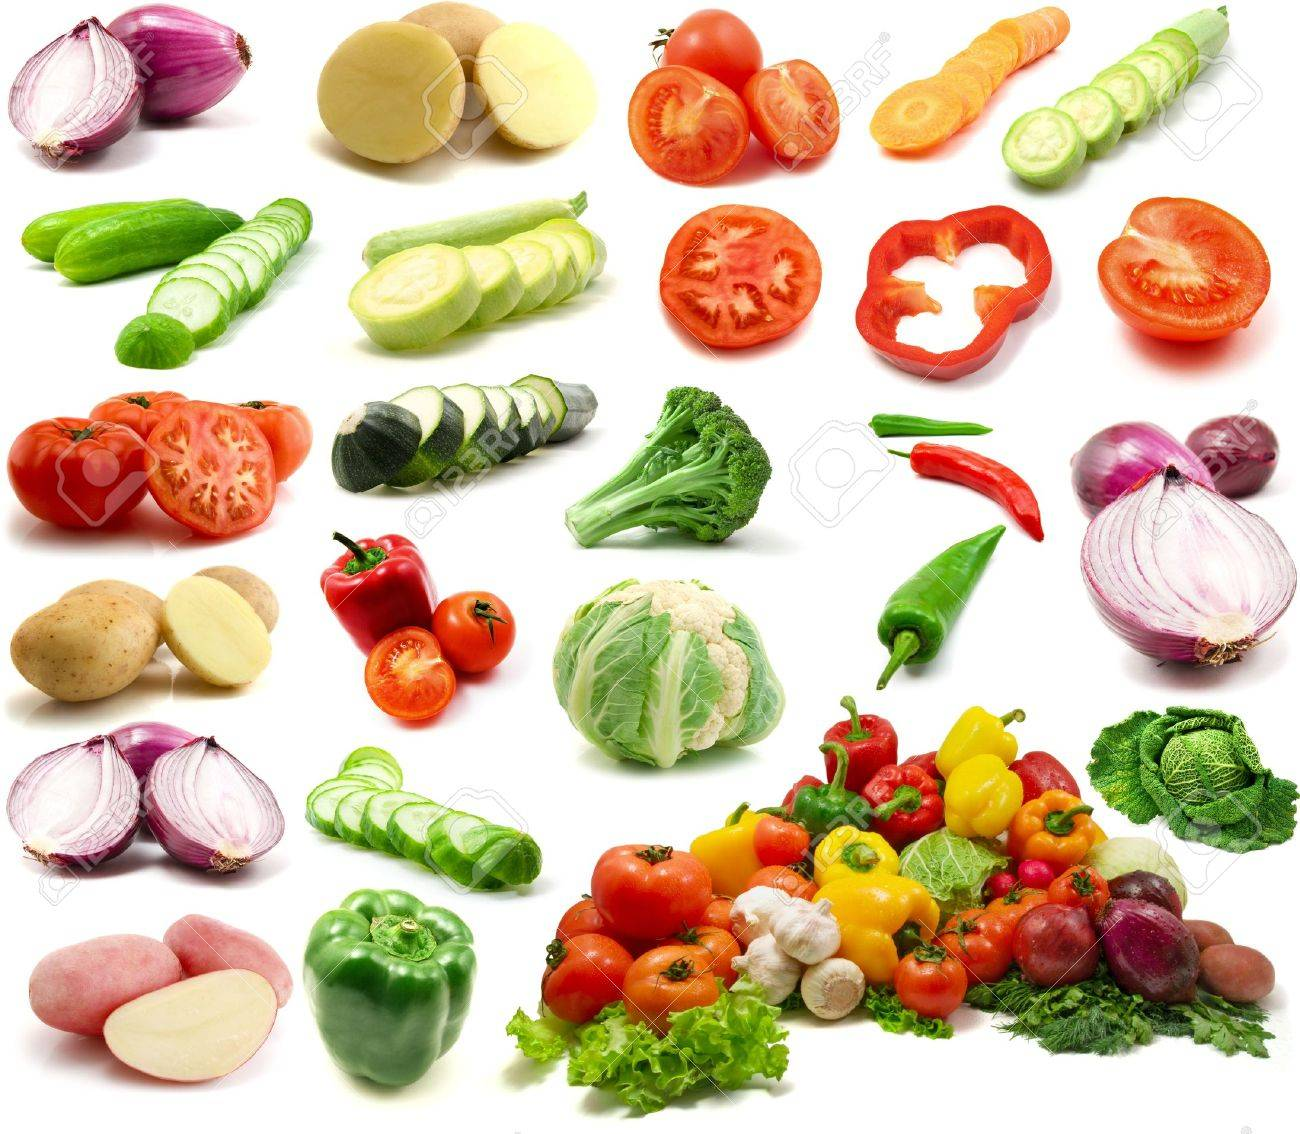 large page of vegetables Stock Photo - 3270979